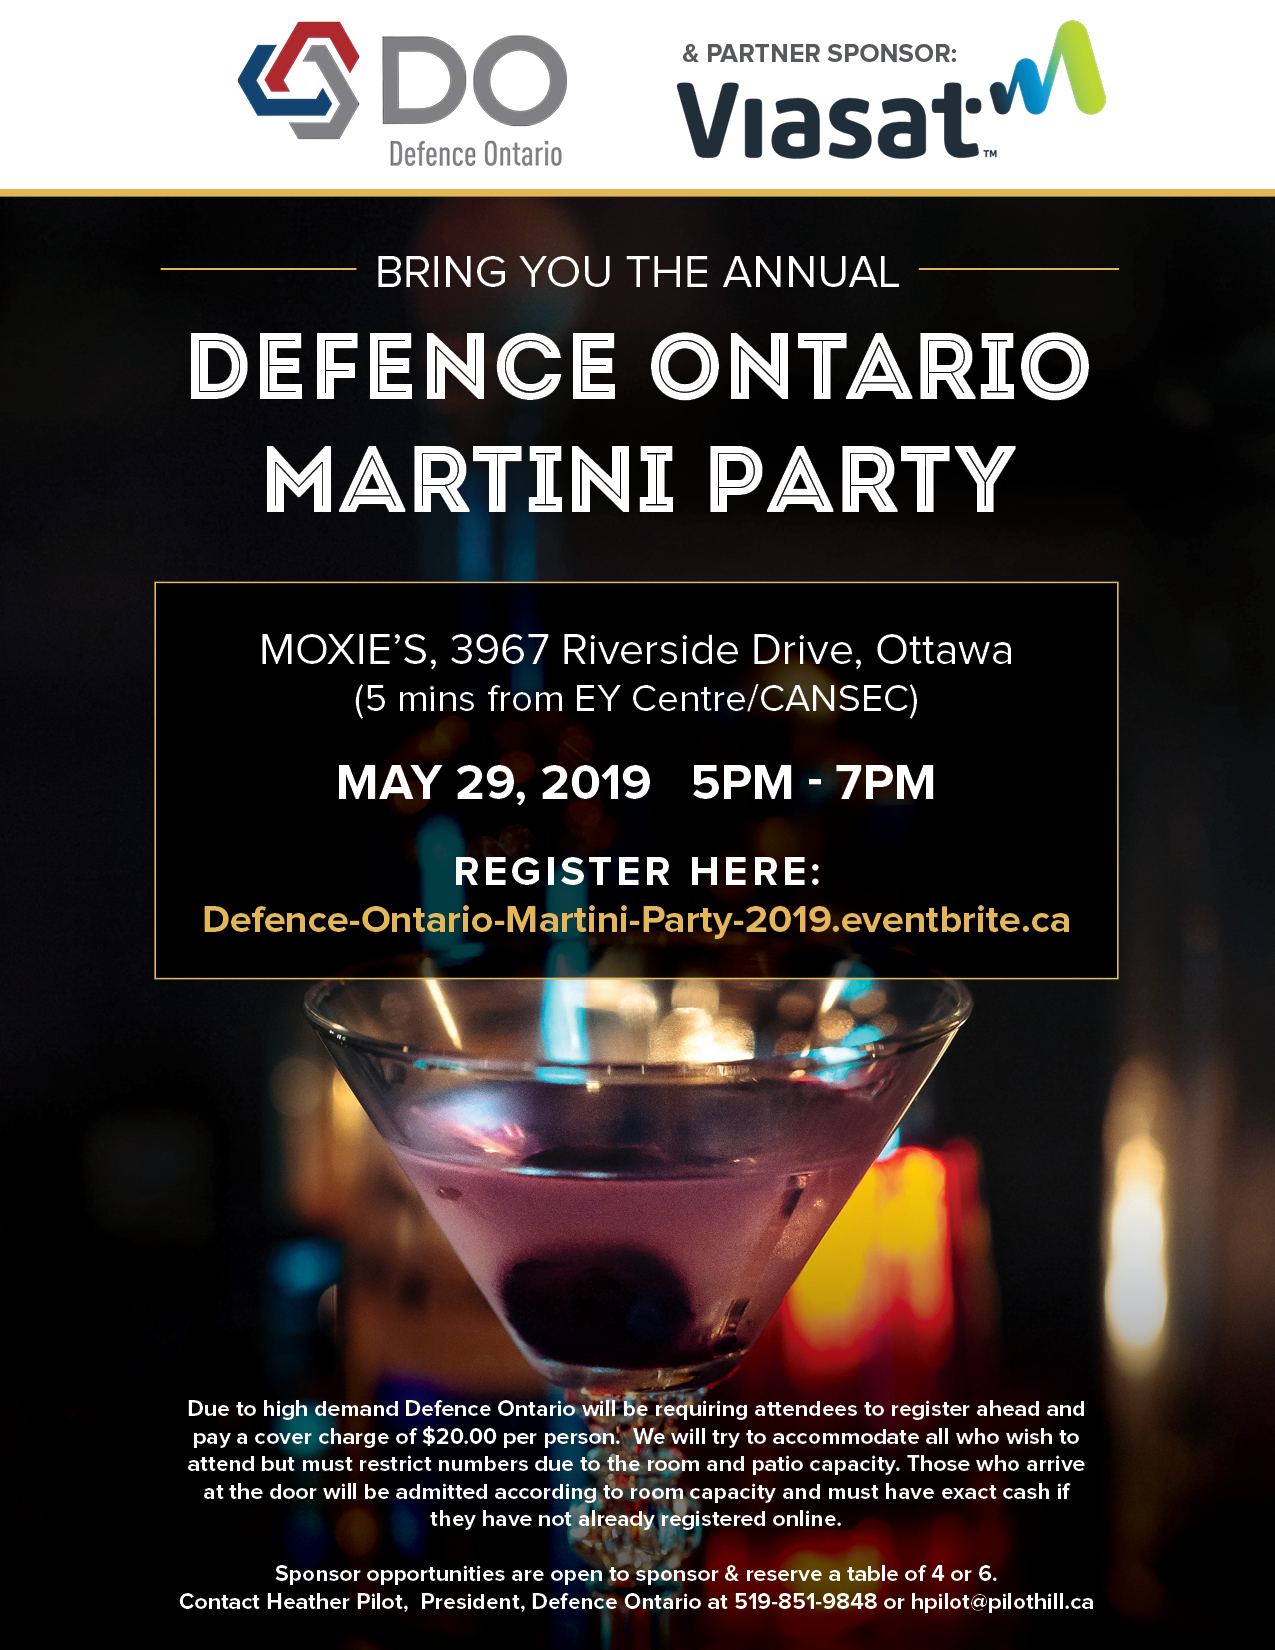 Defence Ontario Martini Party 2019